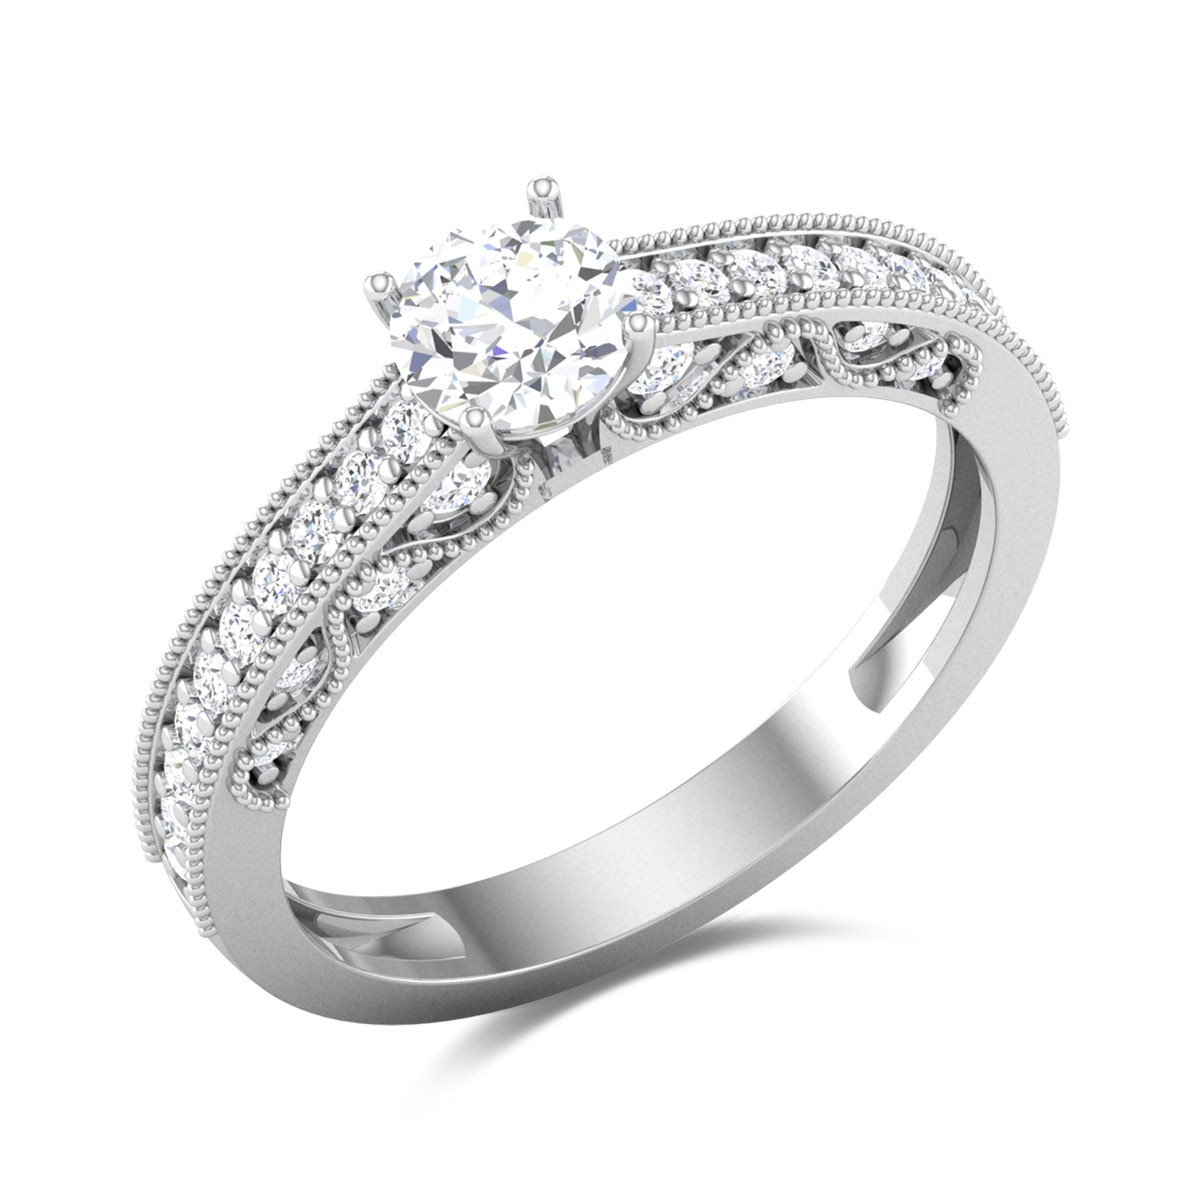 Chaarvi Solitaire Ring